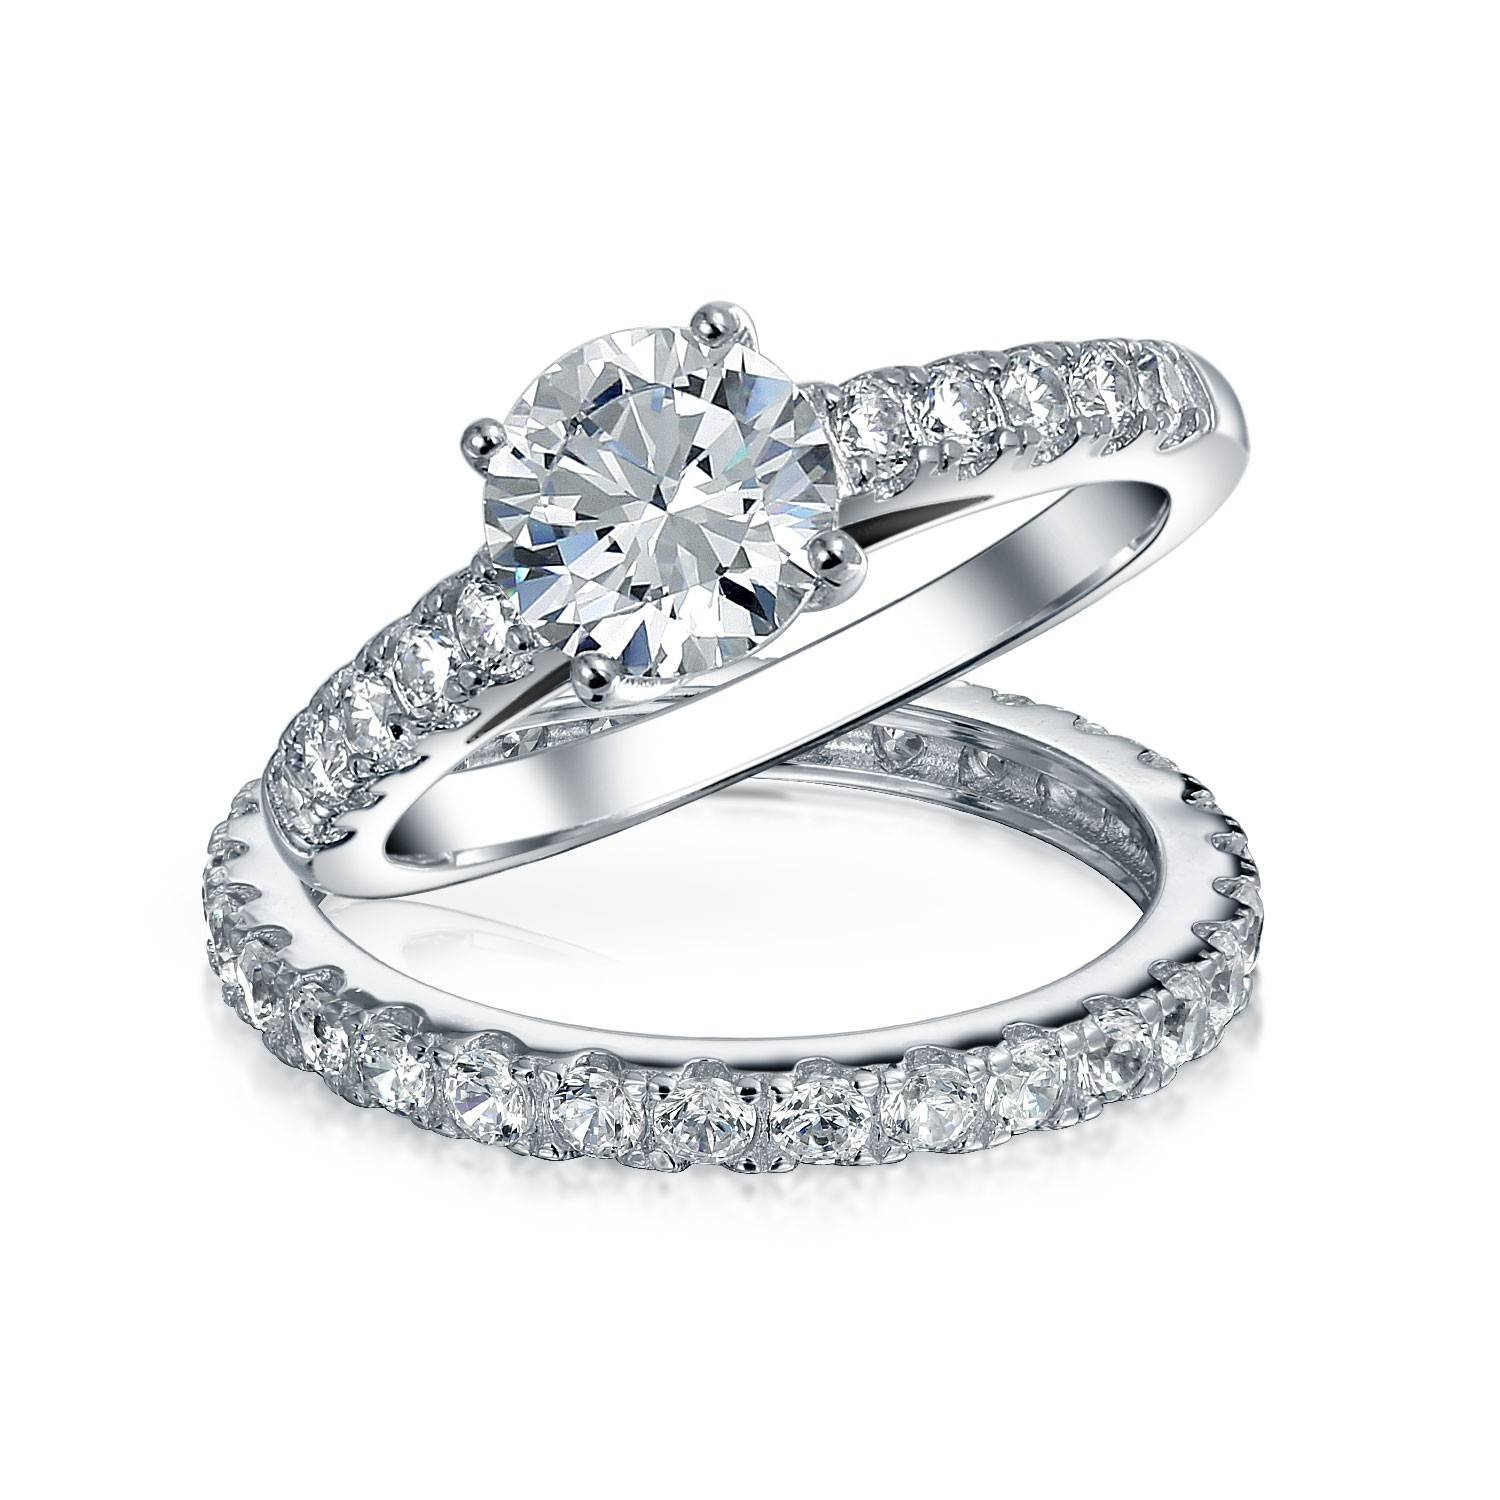 Unique Engagement Rings – Sterling Silver Cz Engagement Ring Sets Intended For Silver Diamond Wedding Rings (View 15 of 15)